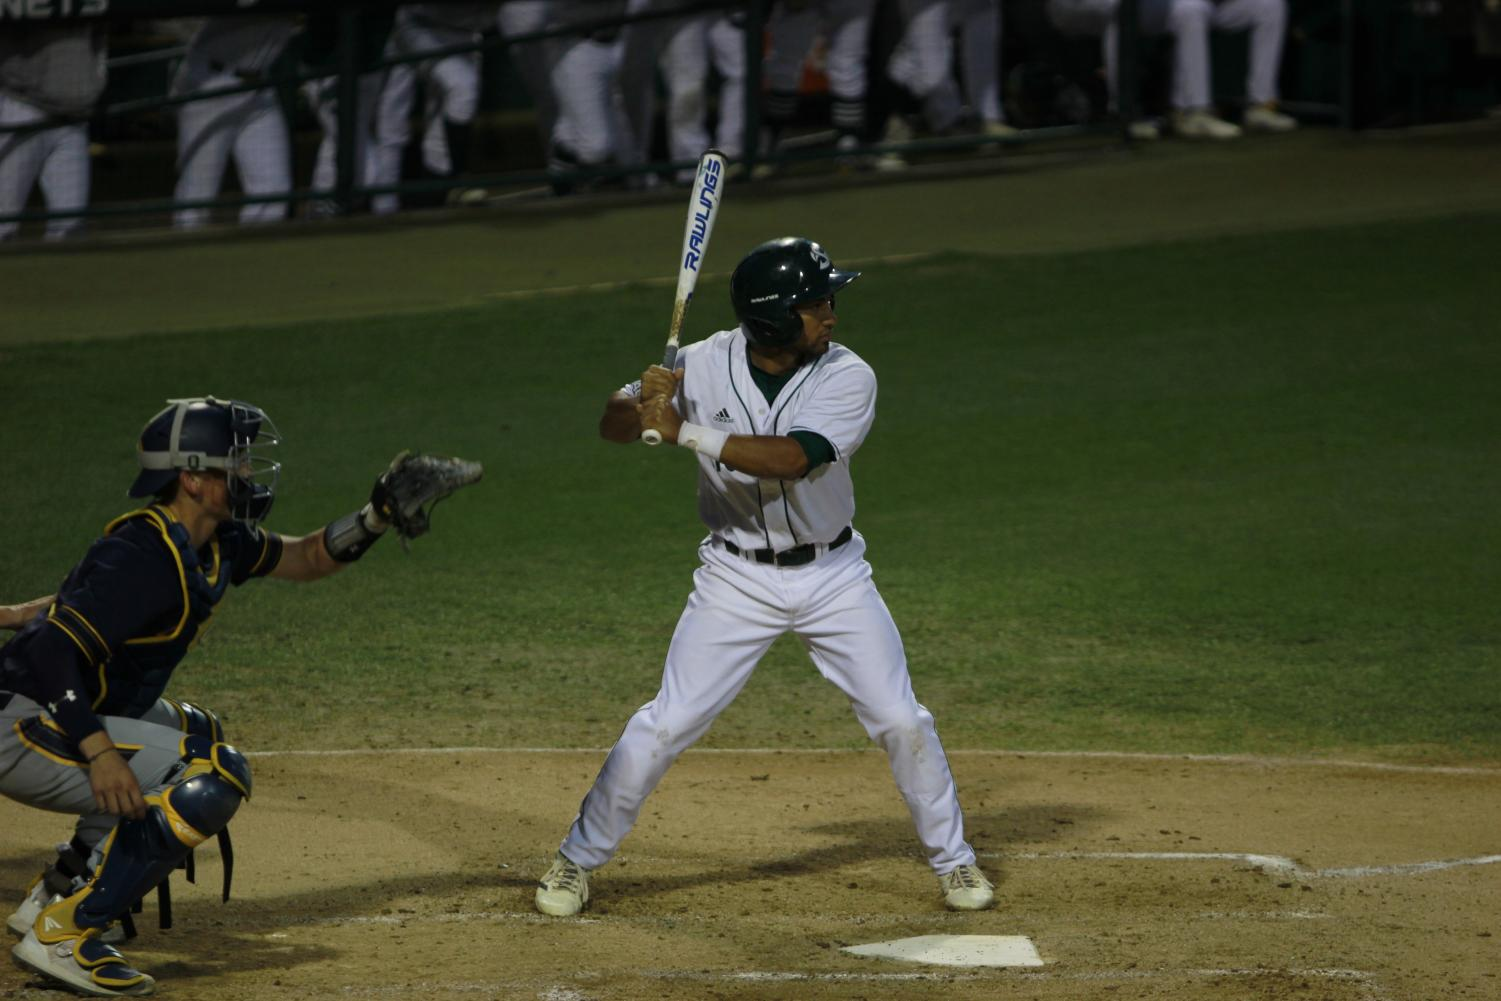 Sac+State+sophomore+infielder+Keith+Torres+anticipates+a+pitch+in+a+6-0+win+over+Cal+Tuesday+at+John+Smith+Field.+Torres+had+one+hit+and+one+walk+with+two+RBIs+in+the+victory.